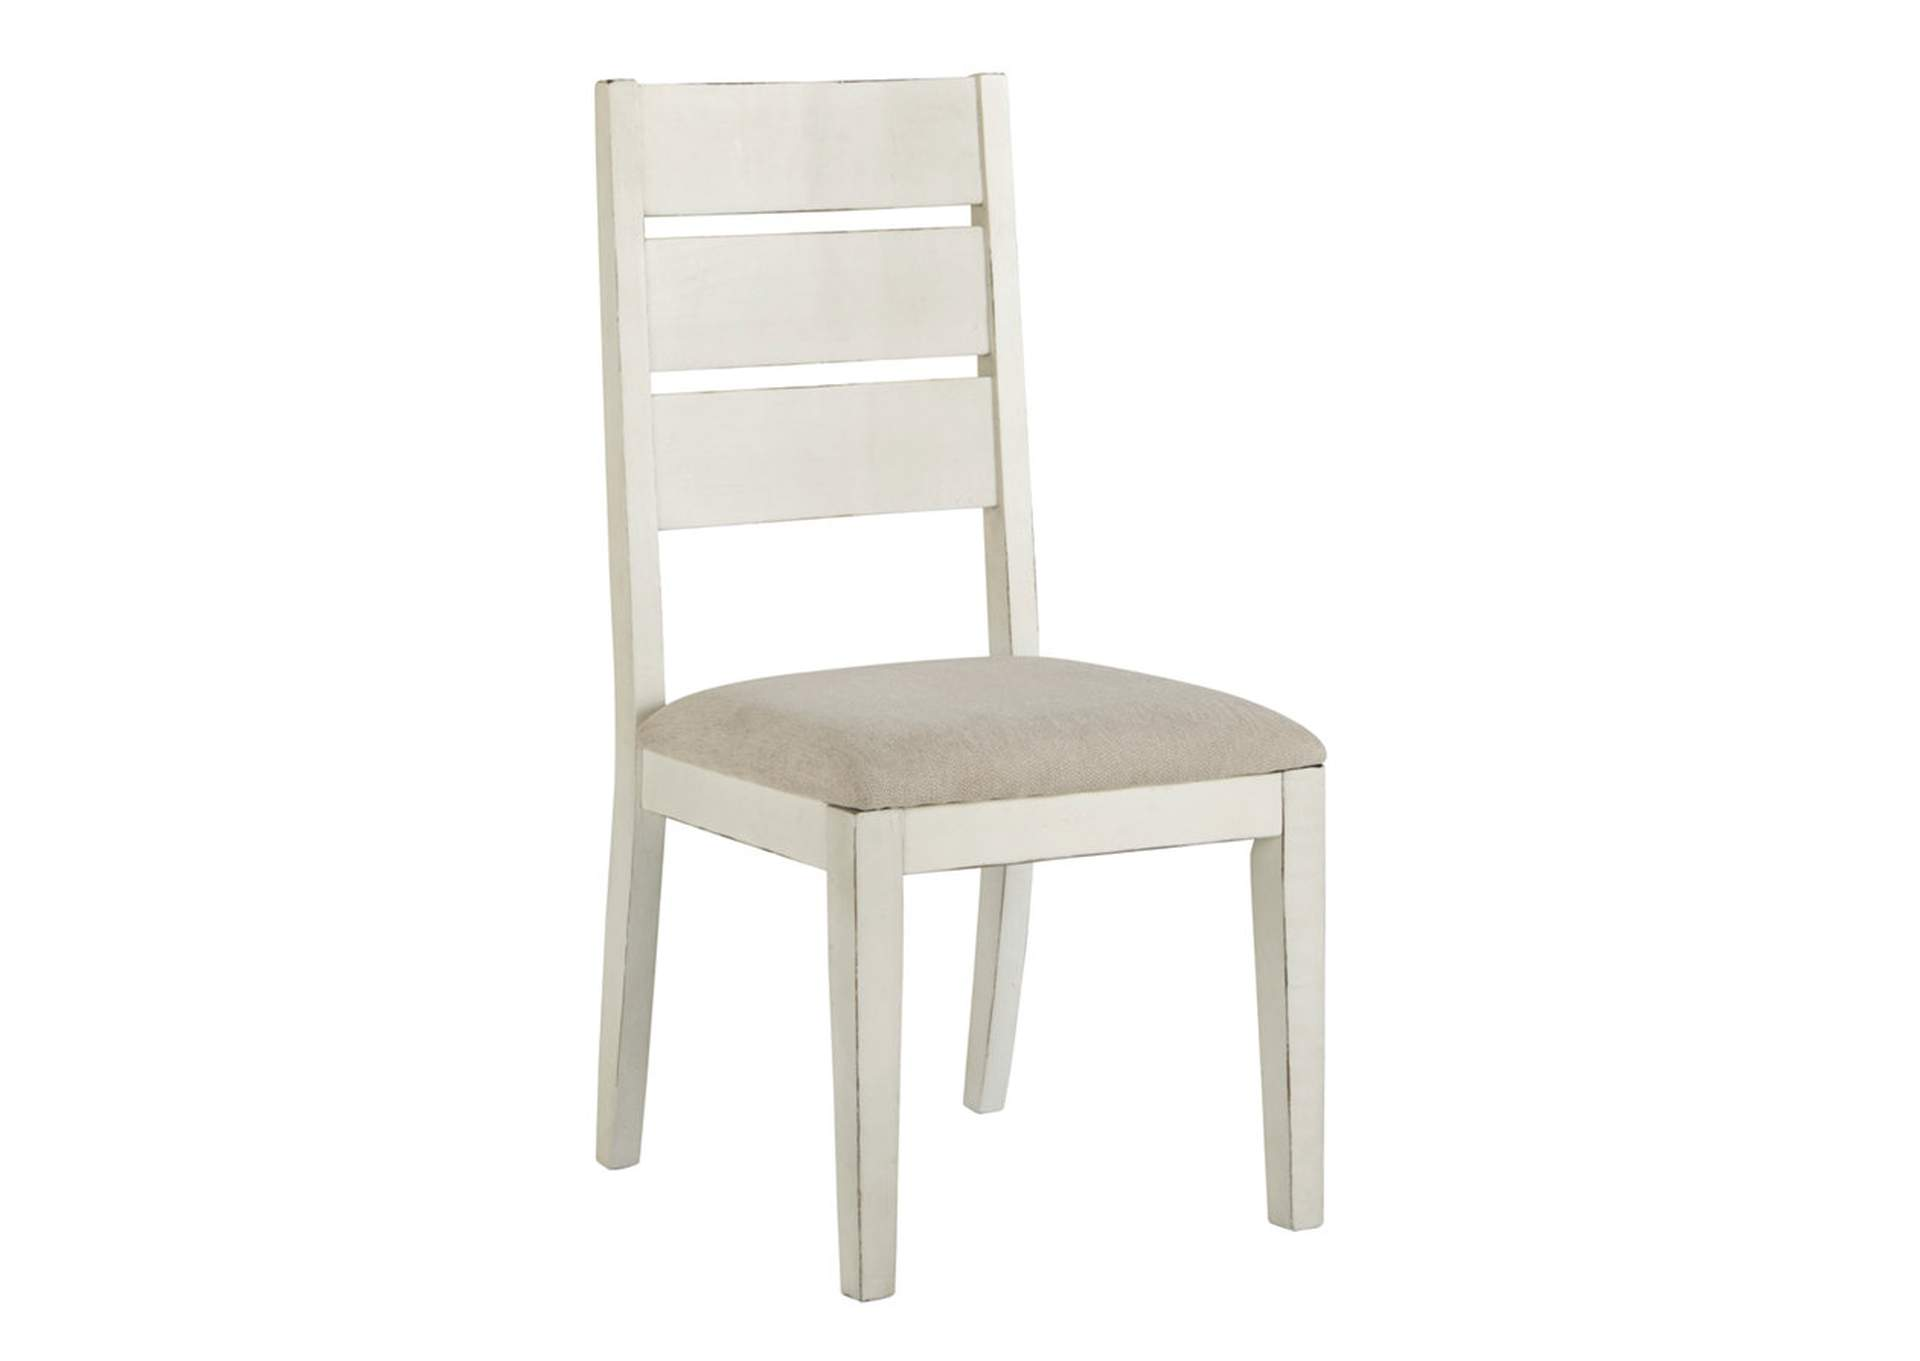 Antique White Dining Chairs Ivan Smith Grindleburg Antique White Dining Upholstered Side Chair